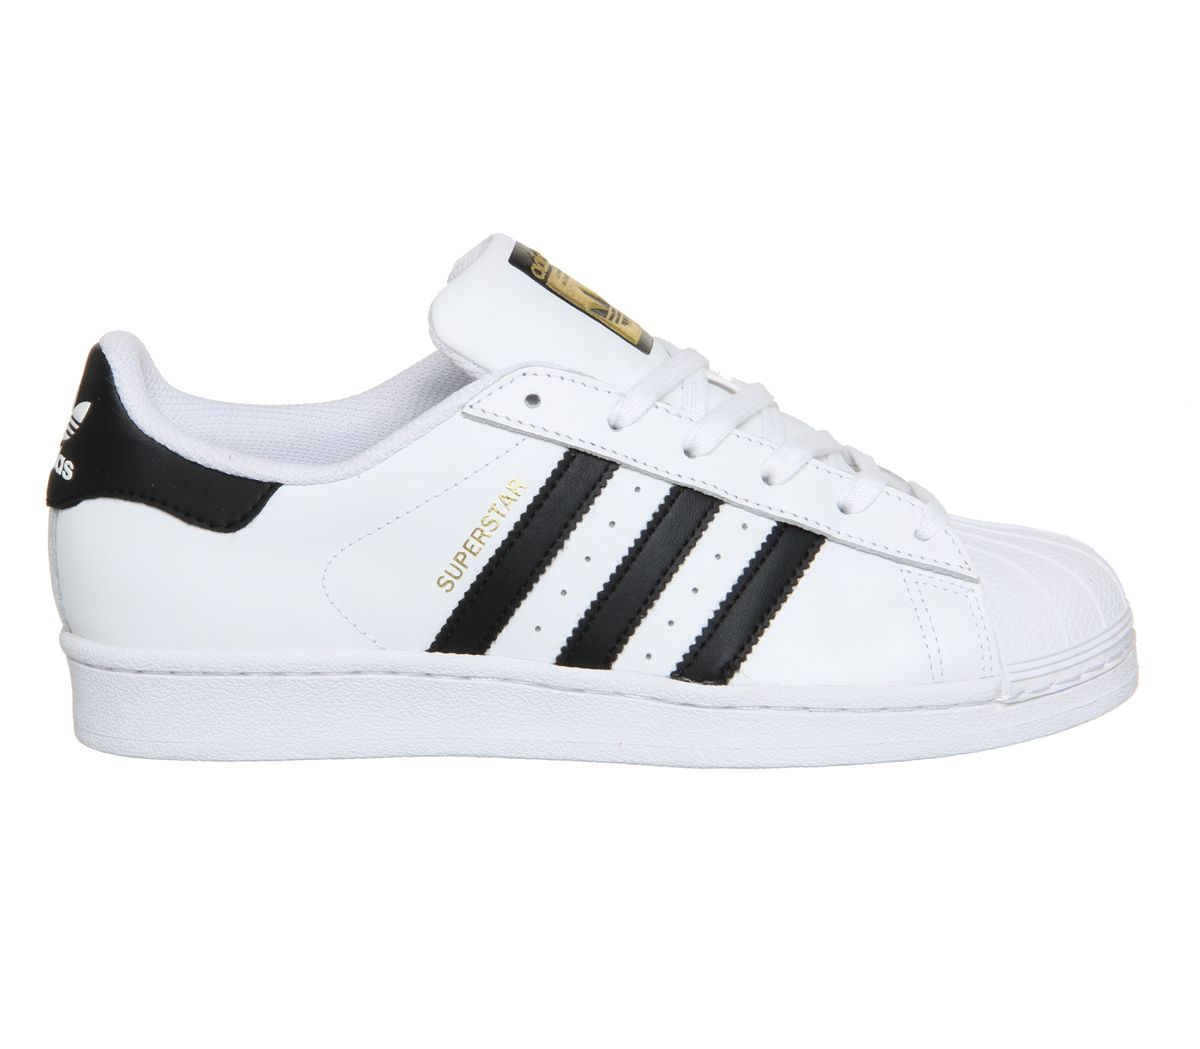 best sneakers 311a6 498f5 Adidas Originals Men s Superstar 2 White Black Stripe Leather Retro Trainers